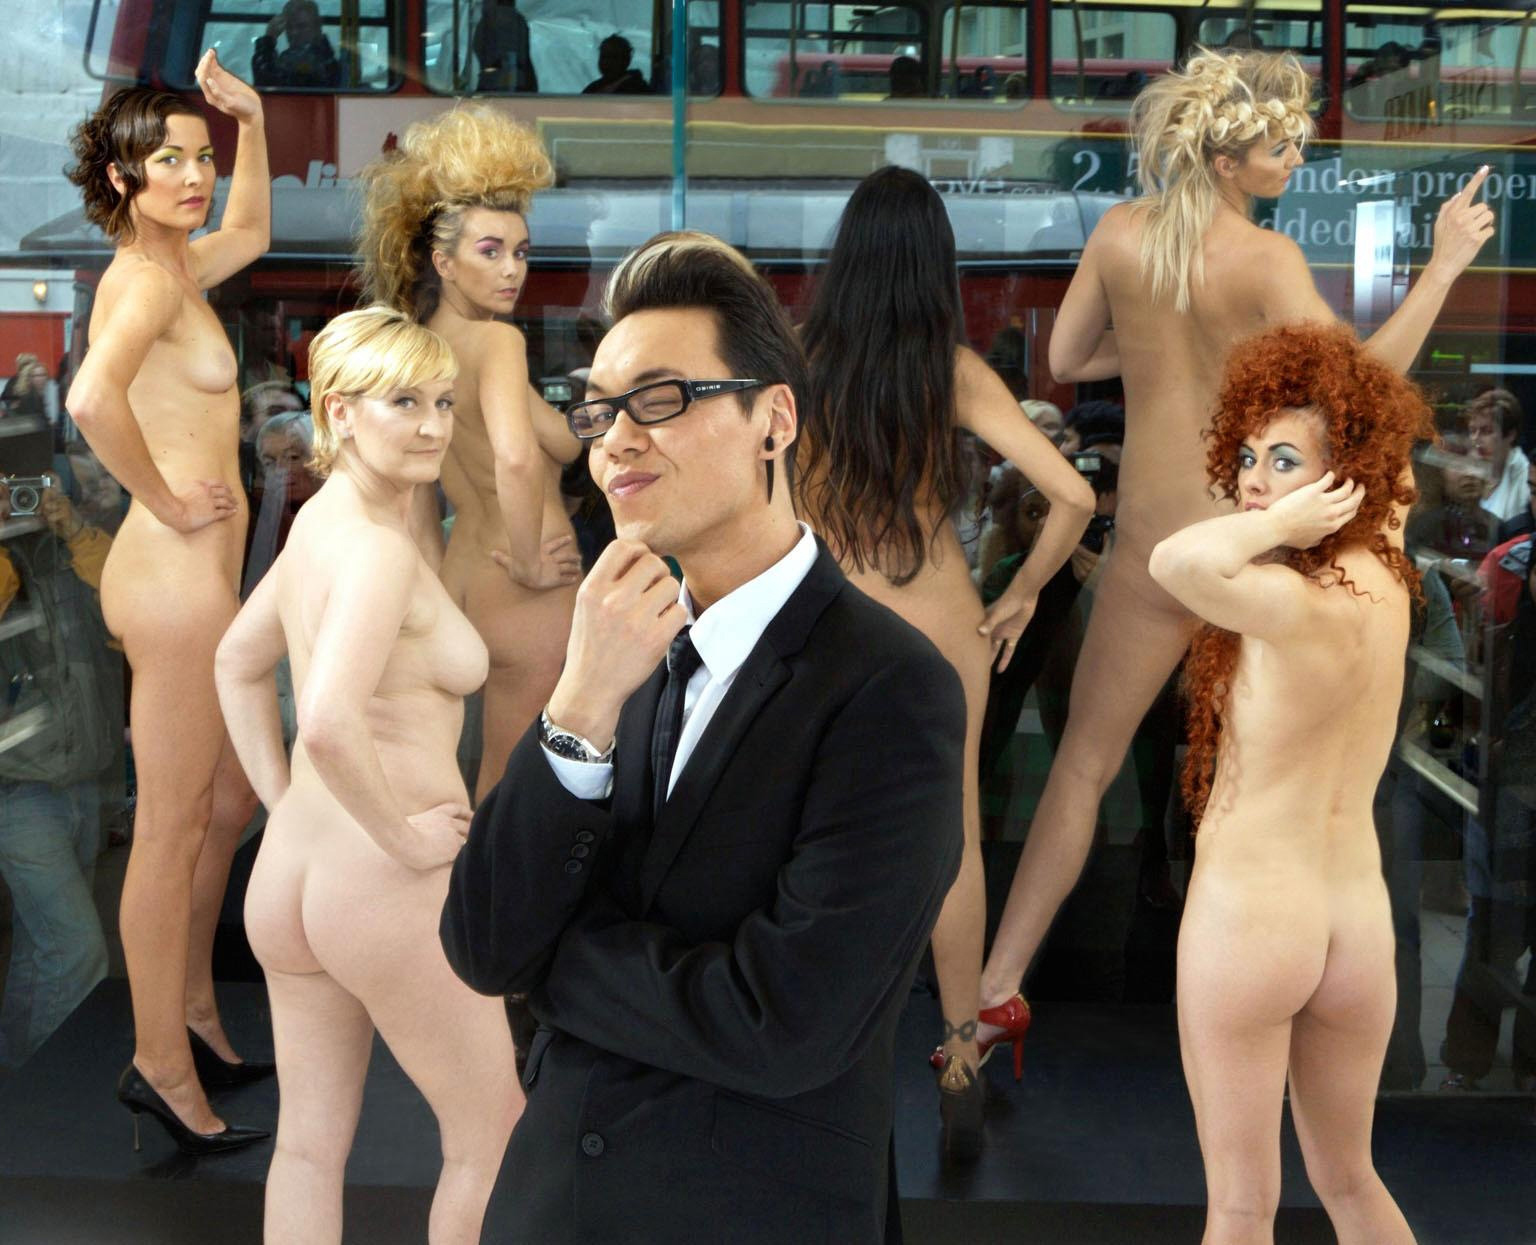 Gok Wan posing with models during the Channel Four series, How to Look Good Naked in 2007 (PA/Channel 4.)